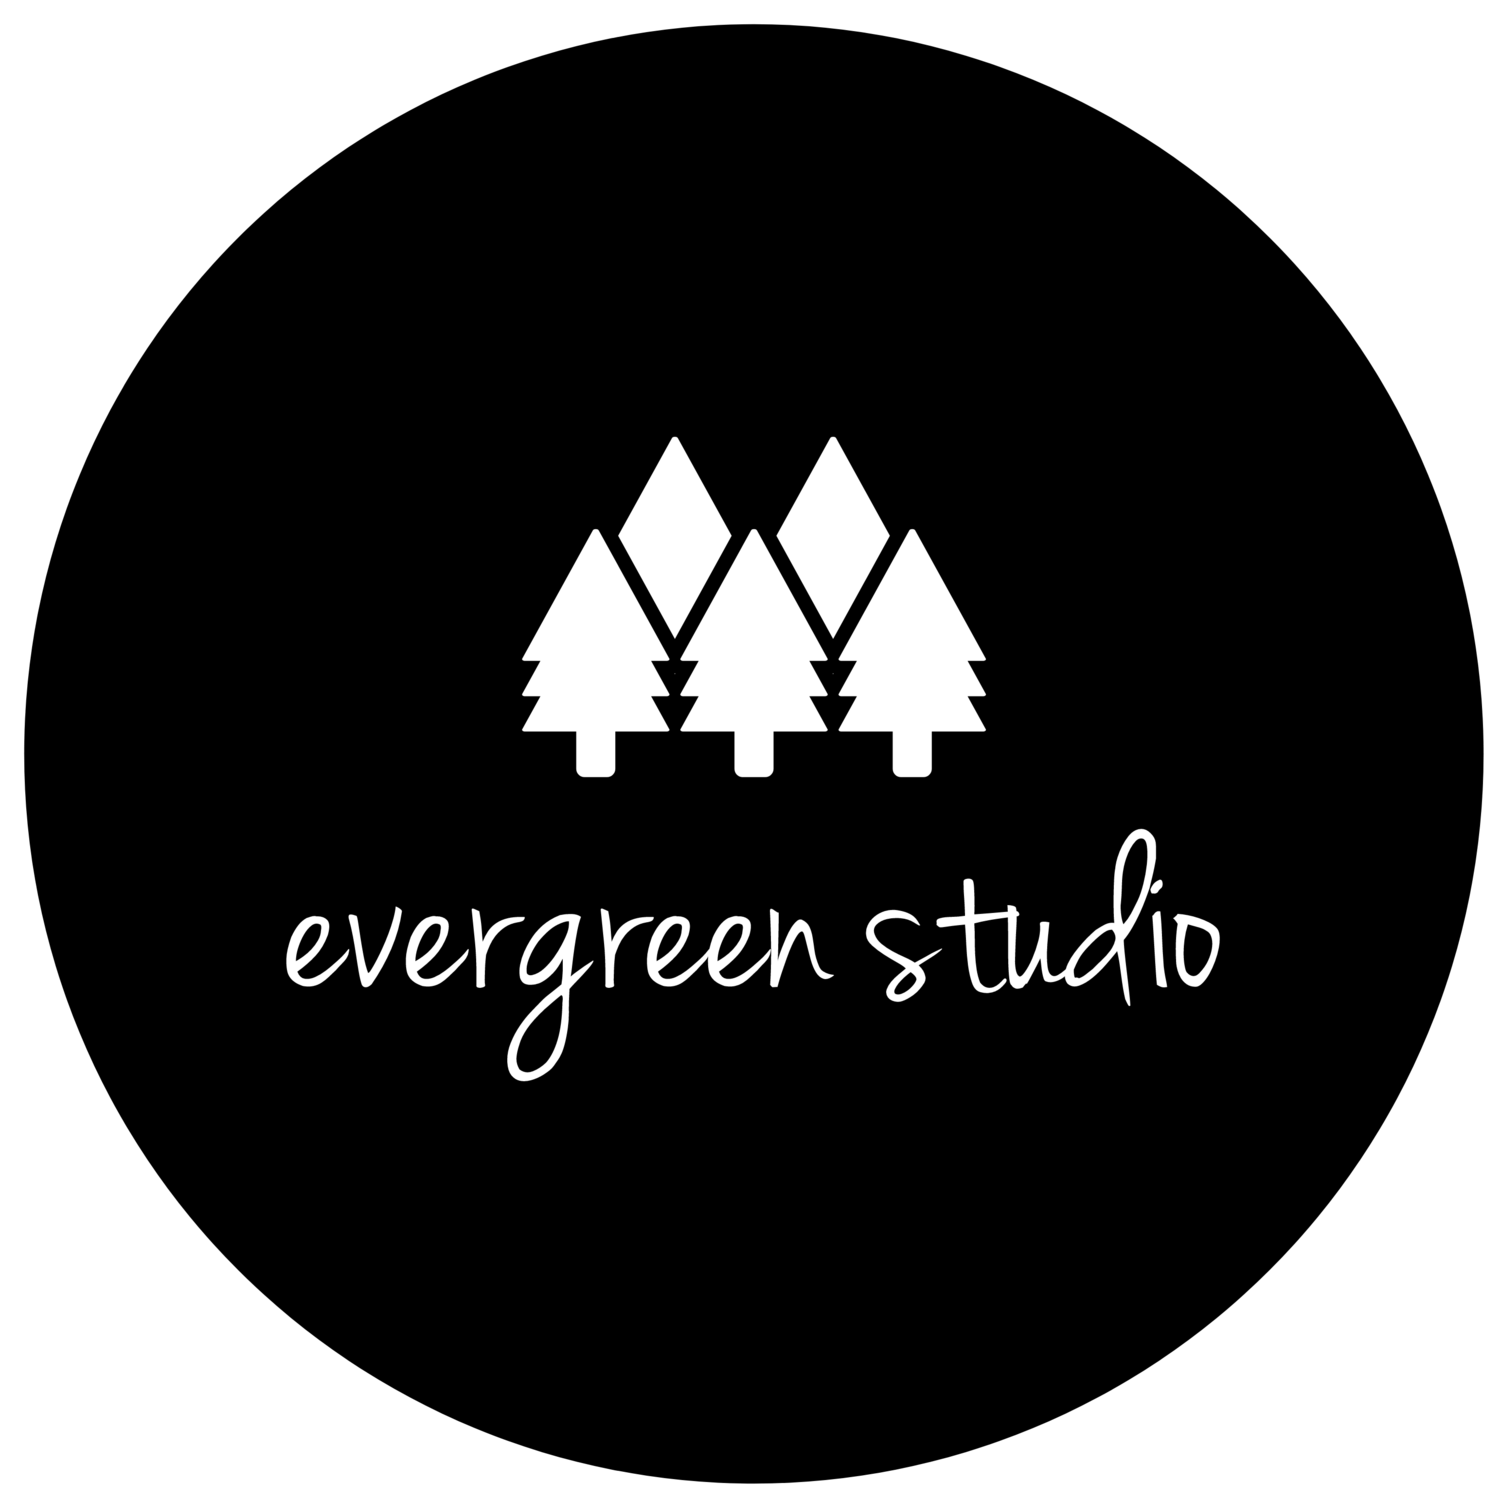 evergreen studio